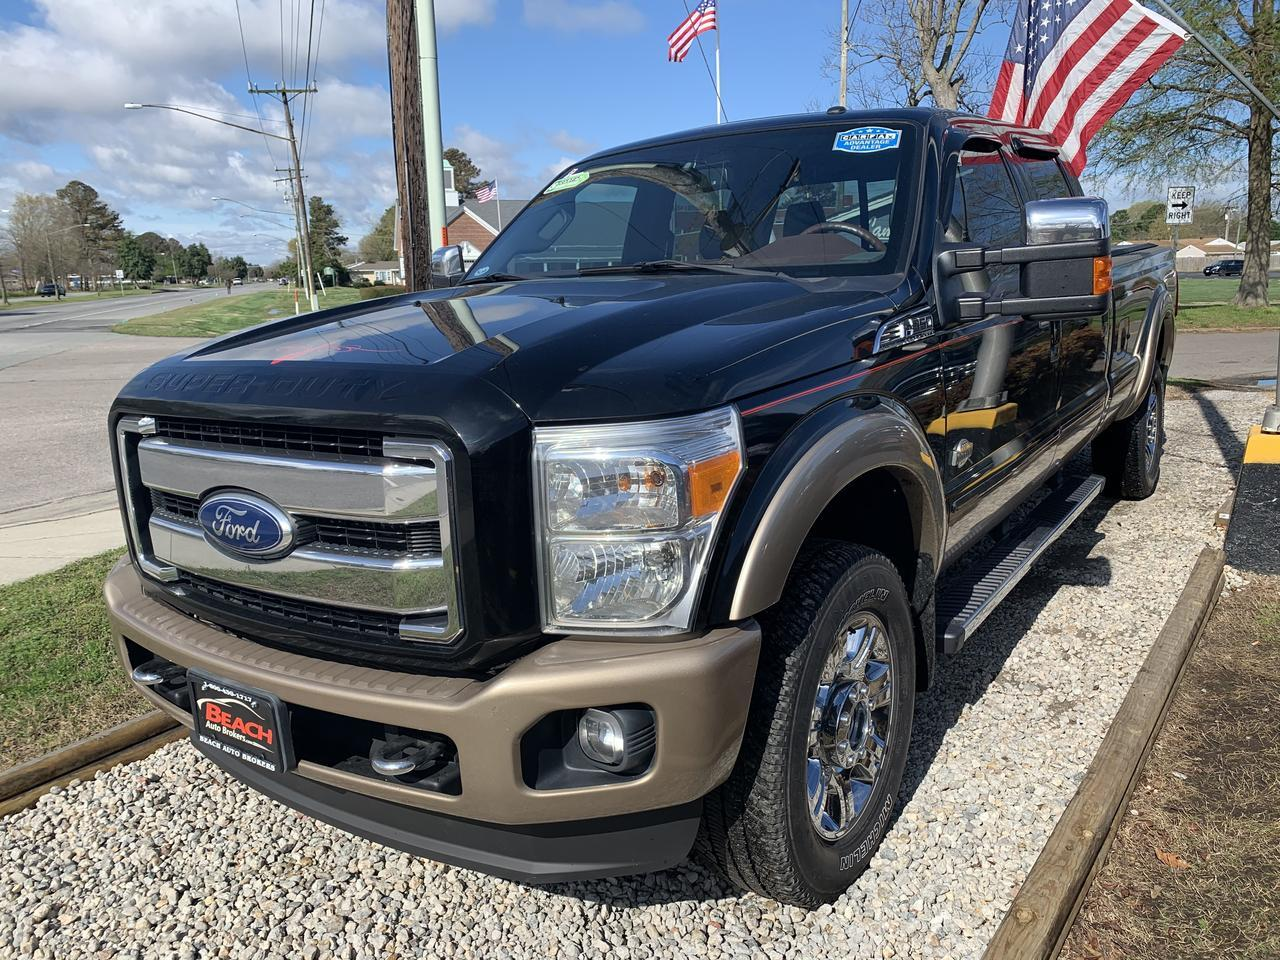 2012 FORD F-350 KING RANCH CREW CAB 4X4, WARRANTY, DIESEL, LEATHER, SUNROOF, NAV, HEATED/COOLED SEATS, CLEAN CARFAX! Norfolk VA